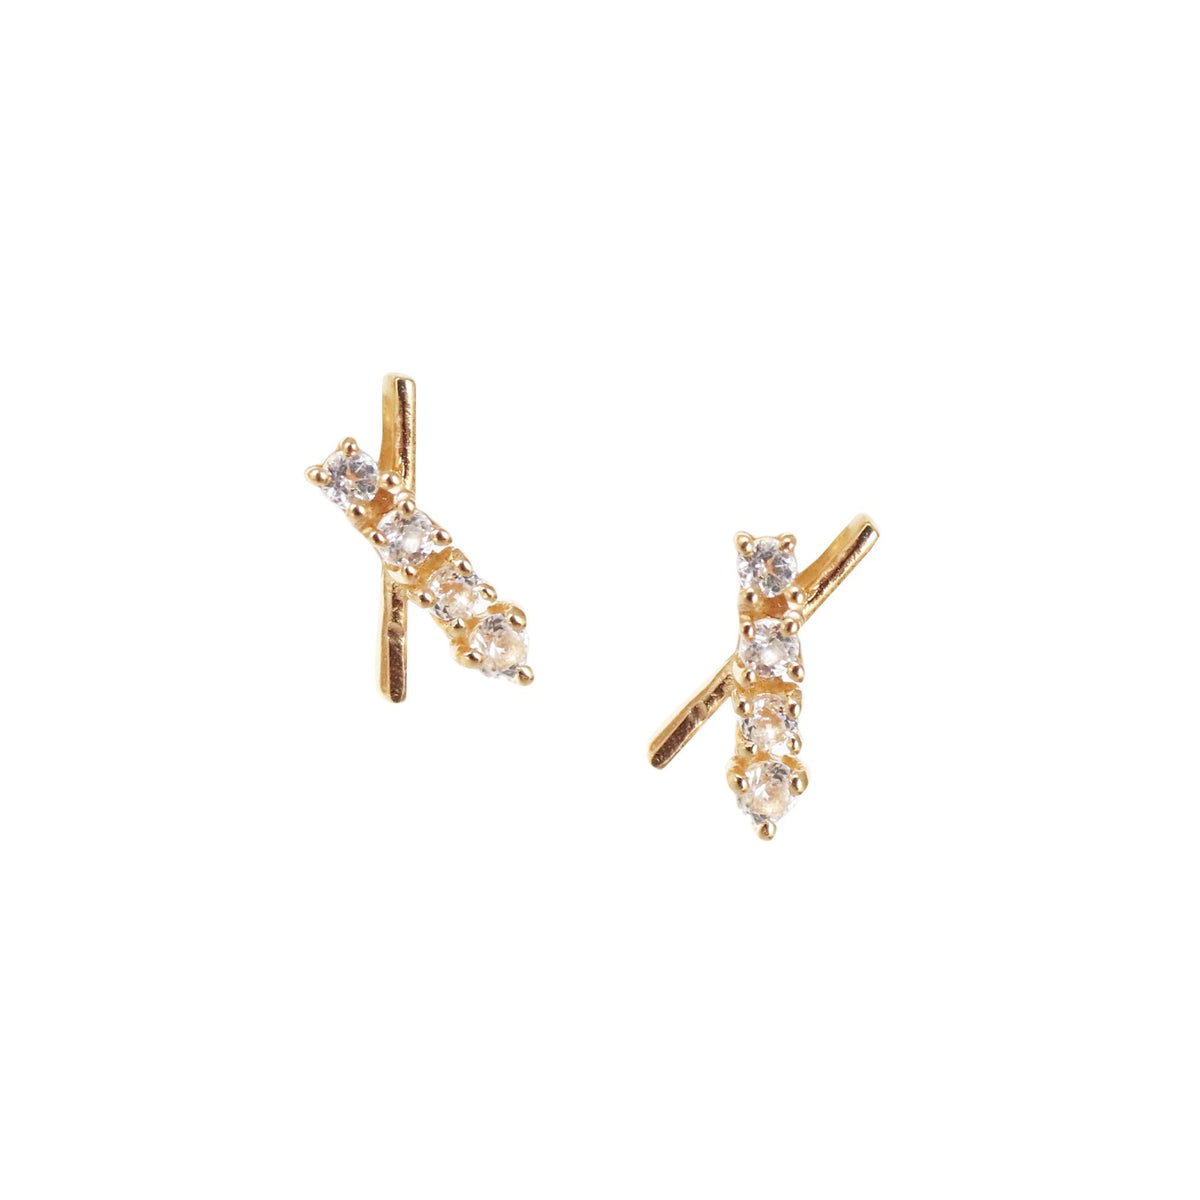 TINY DREAM STARDUST STUDS - CUBIC ZIRCONIA & GOLD - SO PRETTY CARA COTTER